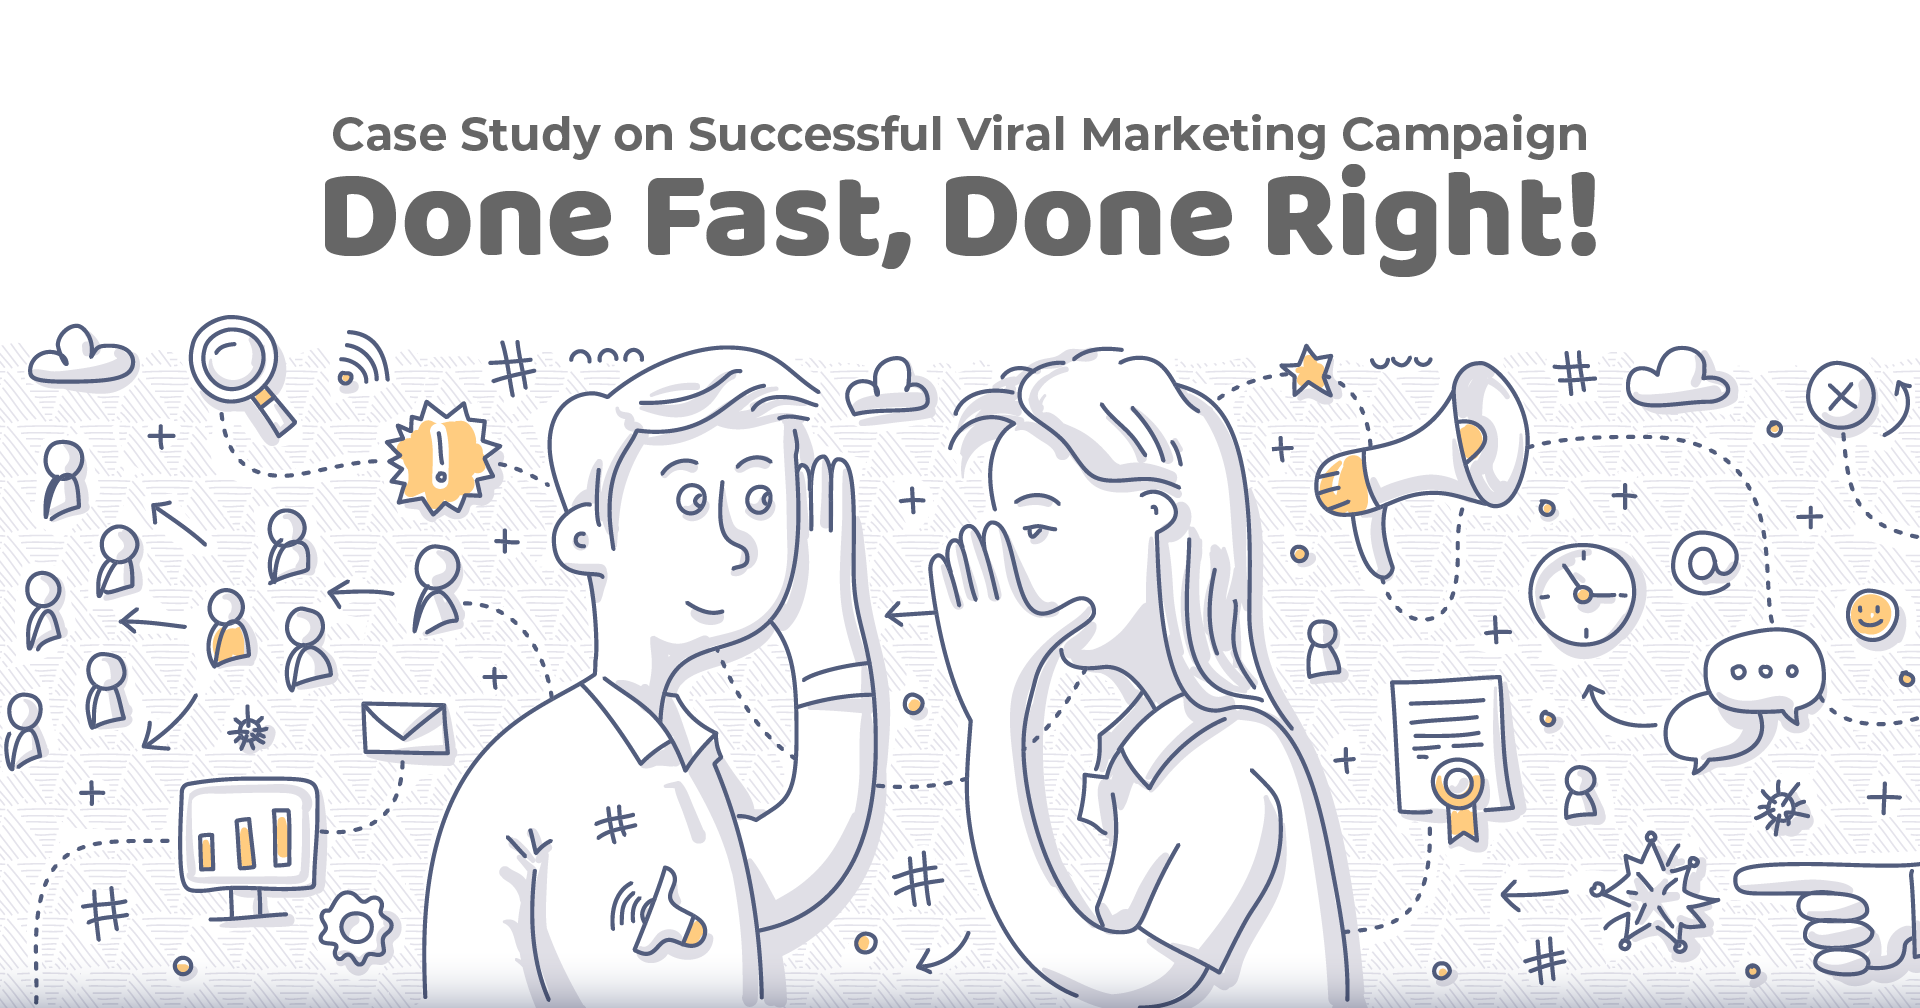 Case Study on Successful Viral Marketing Campaign